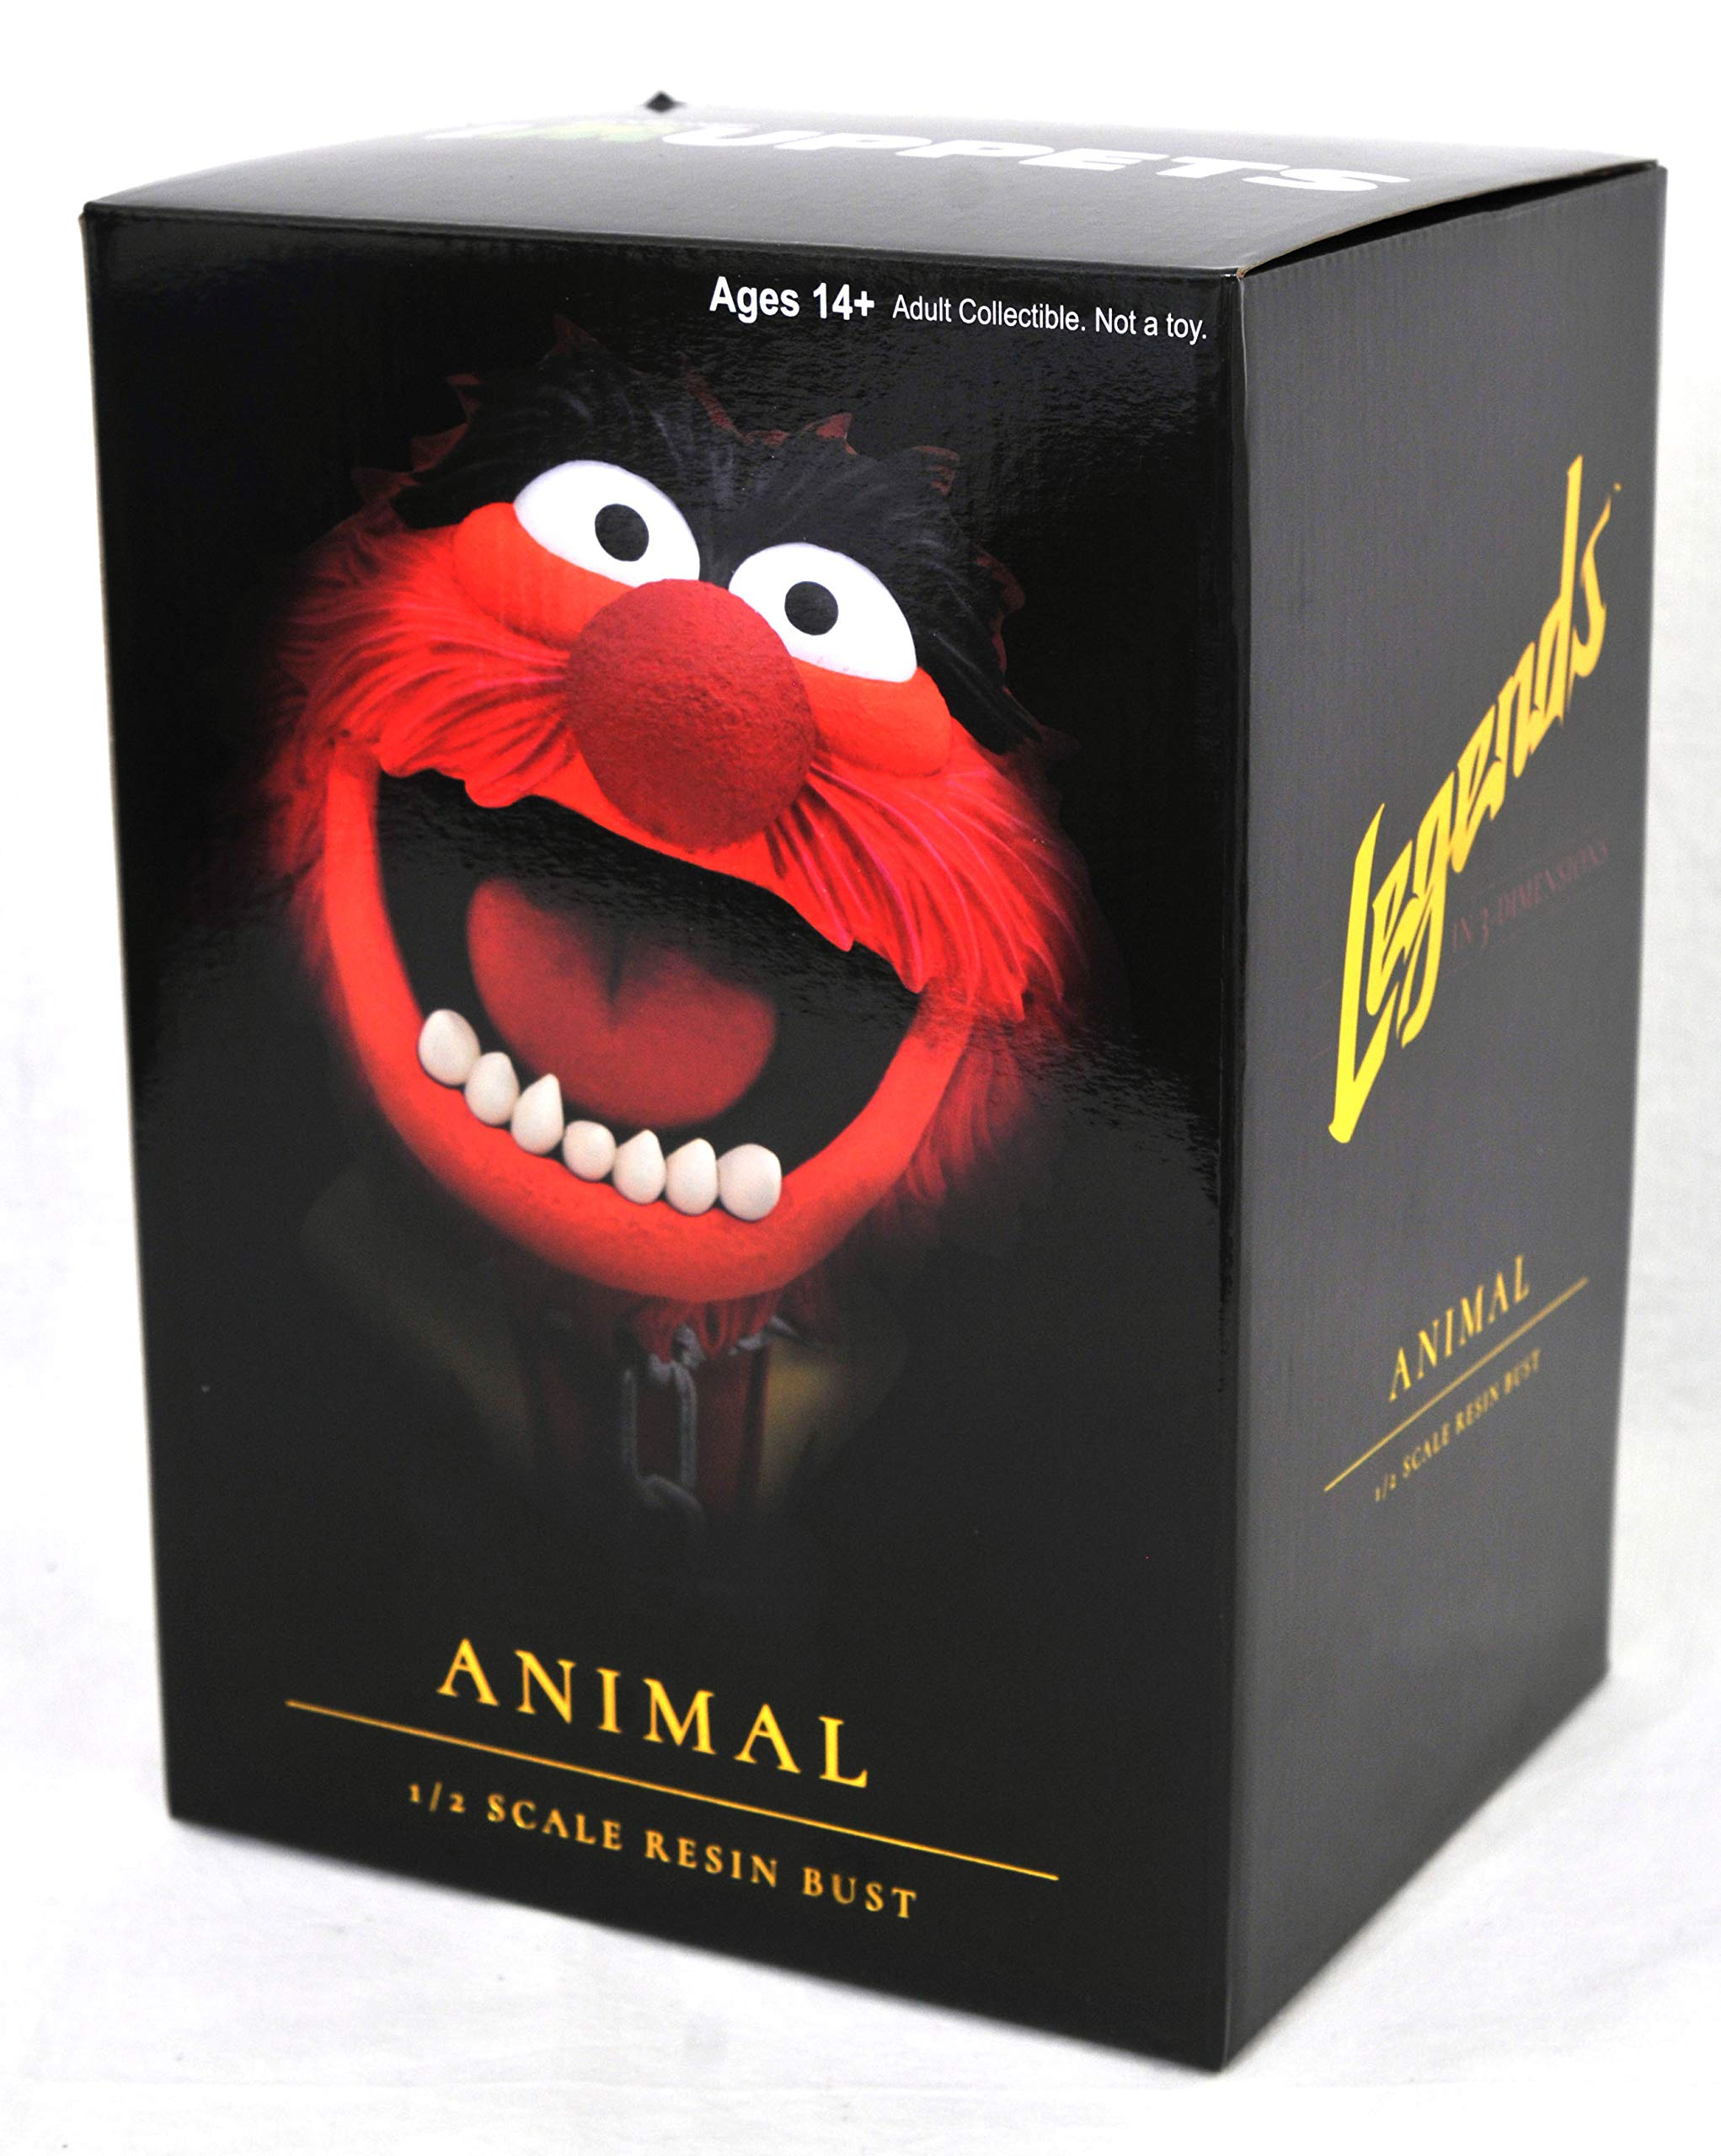 DIAMOND SELECT TOYS OCT182226 Select Toys Legends in 3-Dimensions: The Muppets Animal 1: 2 Scale Bust, Multicolor by DIAMOND SELECT TOYS (Image #3)